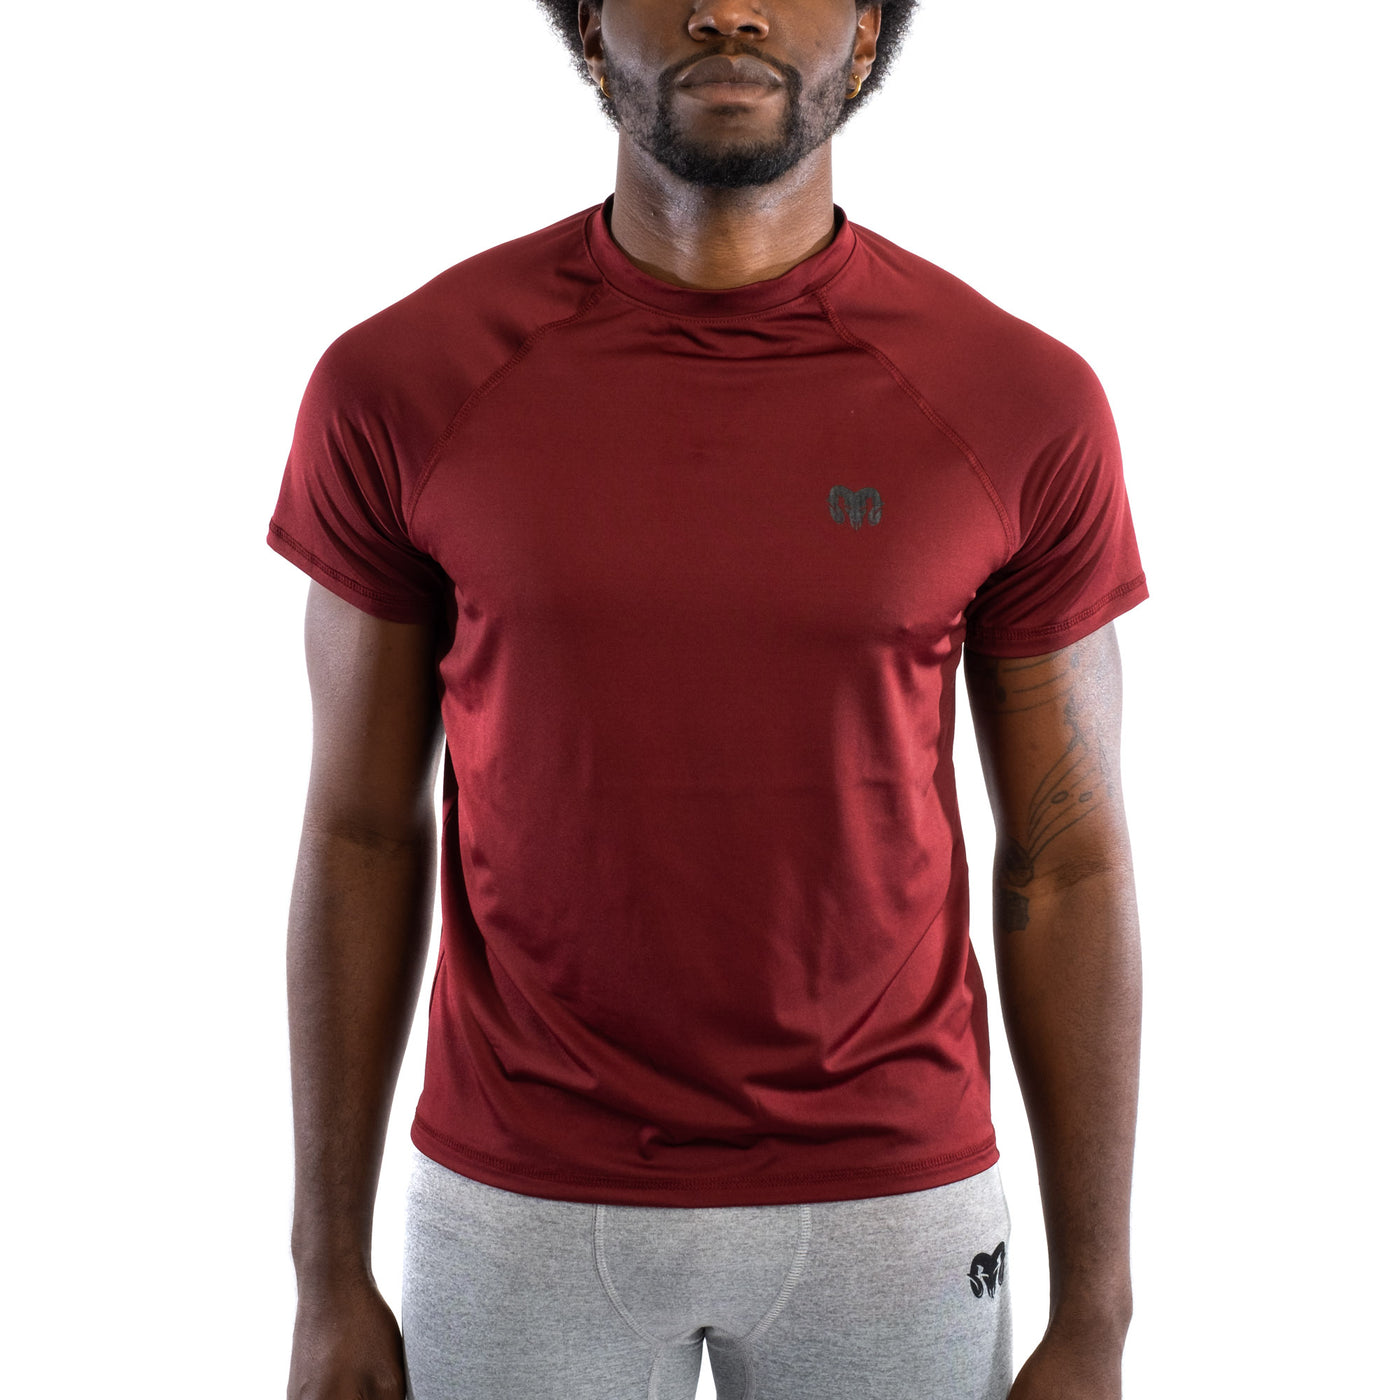 Quick Dry Compression Gym T-Shirt, Regular Fit, Burgundy